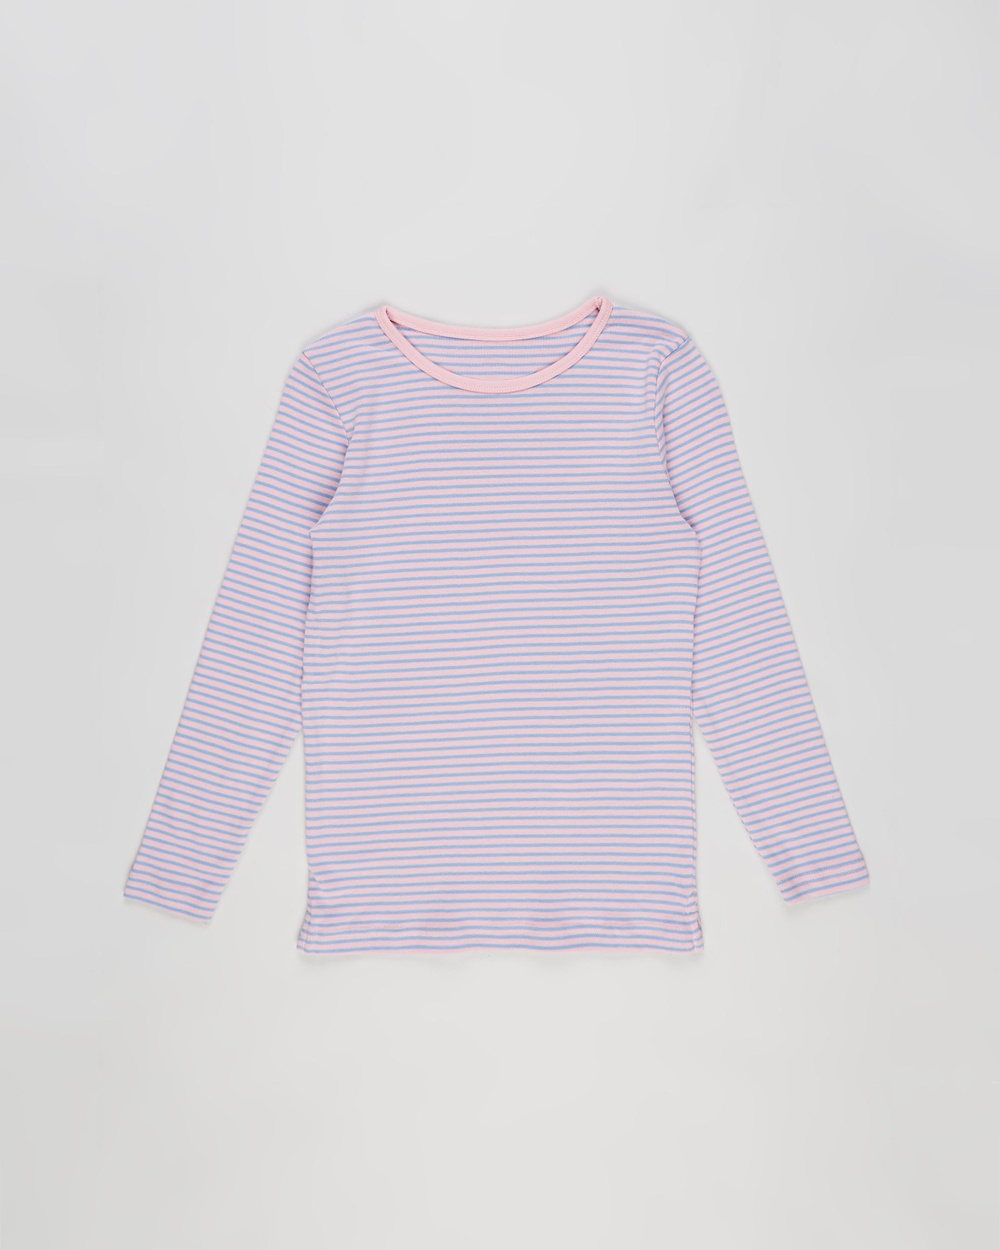 Cotton On Kids - Jessie Crew Tee   Kids Teens - T-Shirts & Singlets (Marshmallow & Summer Sky Stripe) Jessie Crew Tee - Kids-Teens